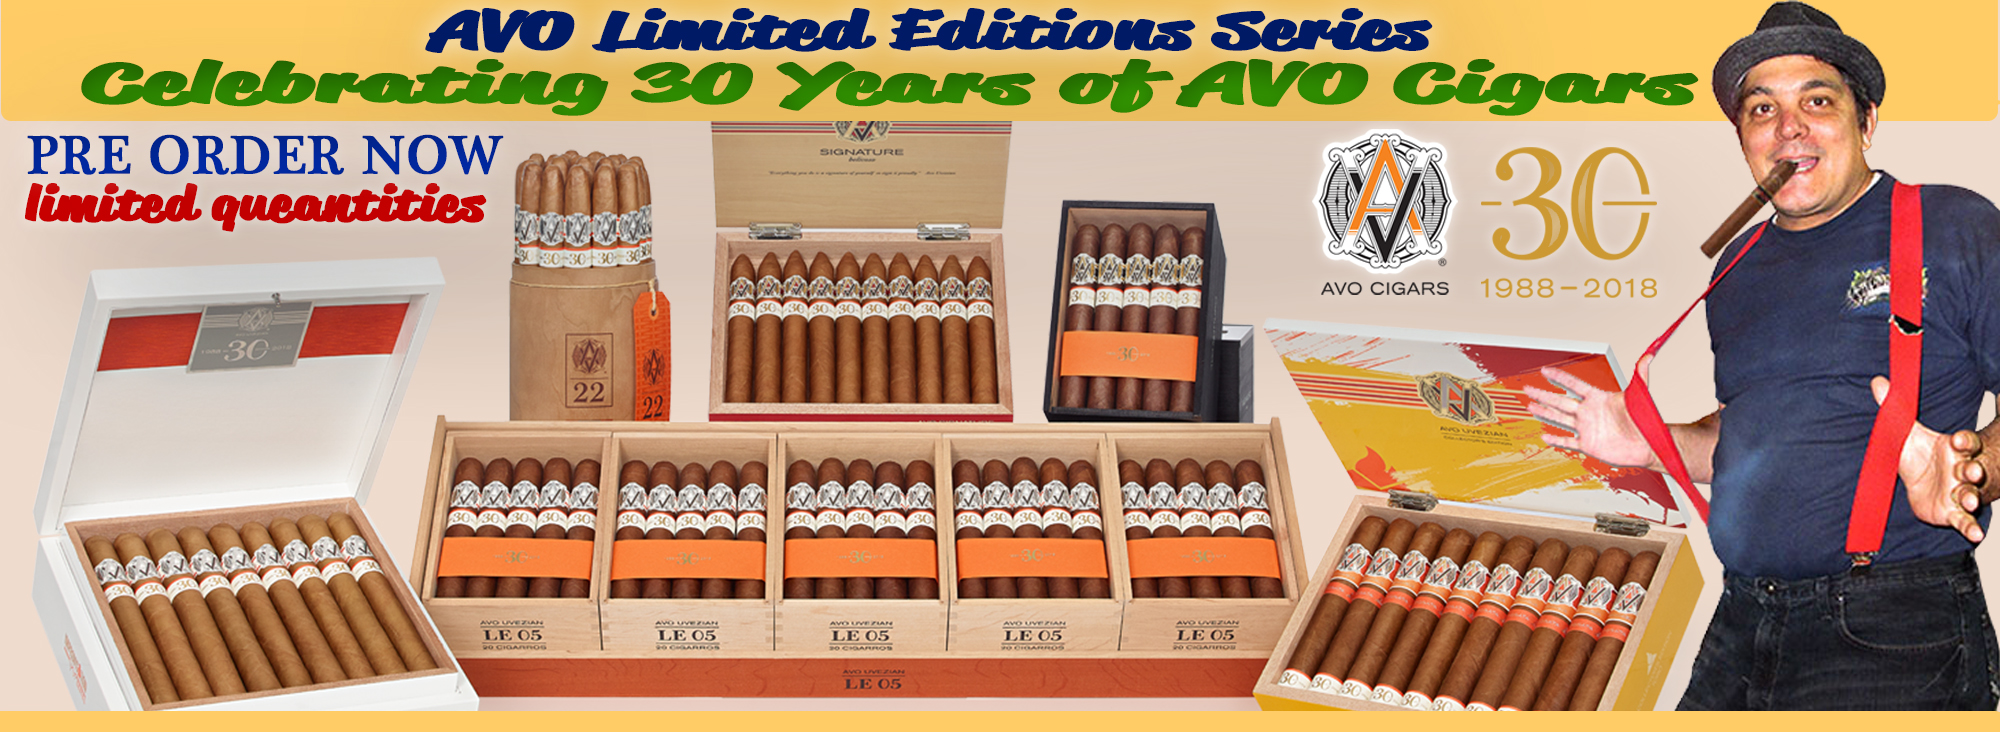 avo-limited-editions-series-banner.jpg